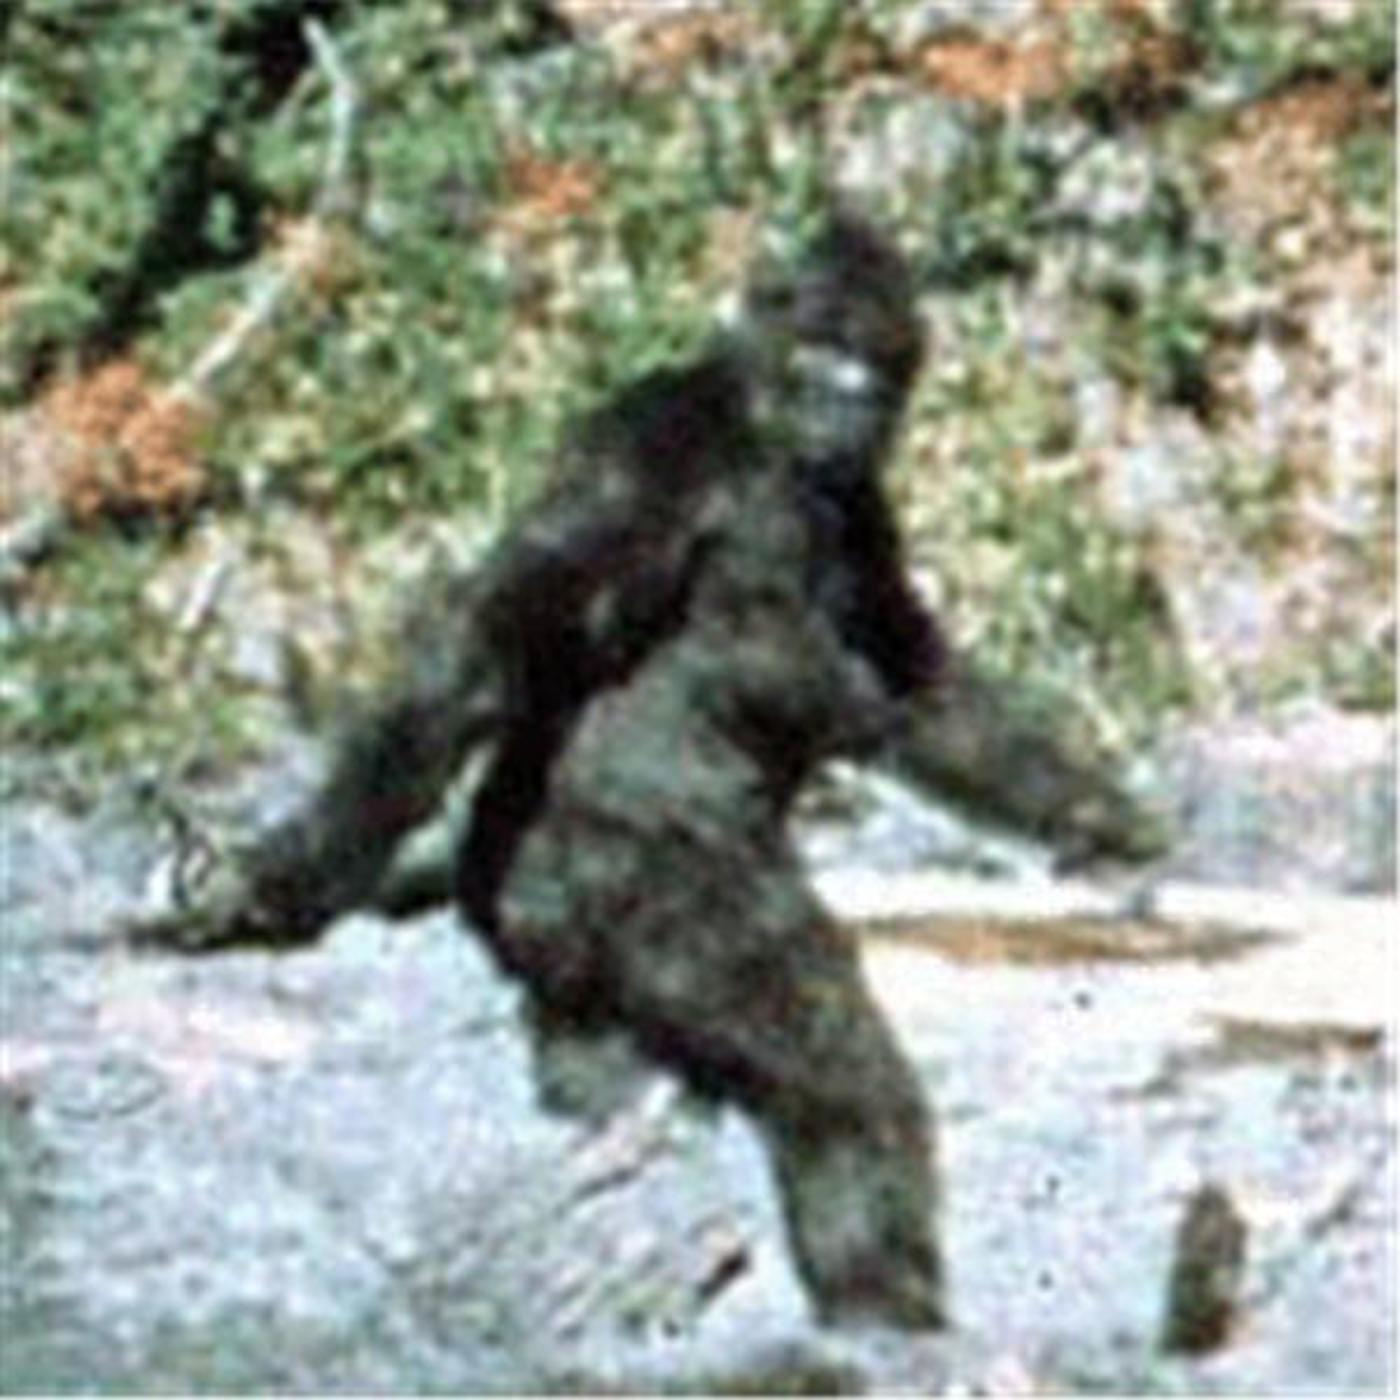 Bigfoot Ground Zero - Best Sighting Ever....